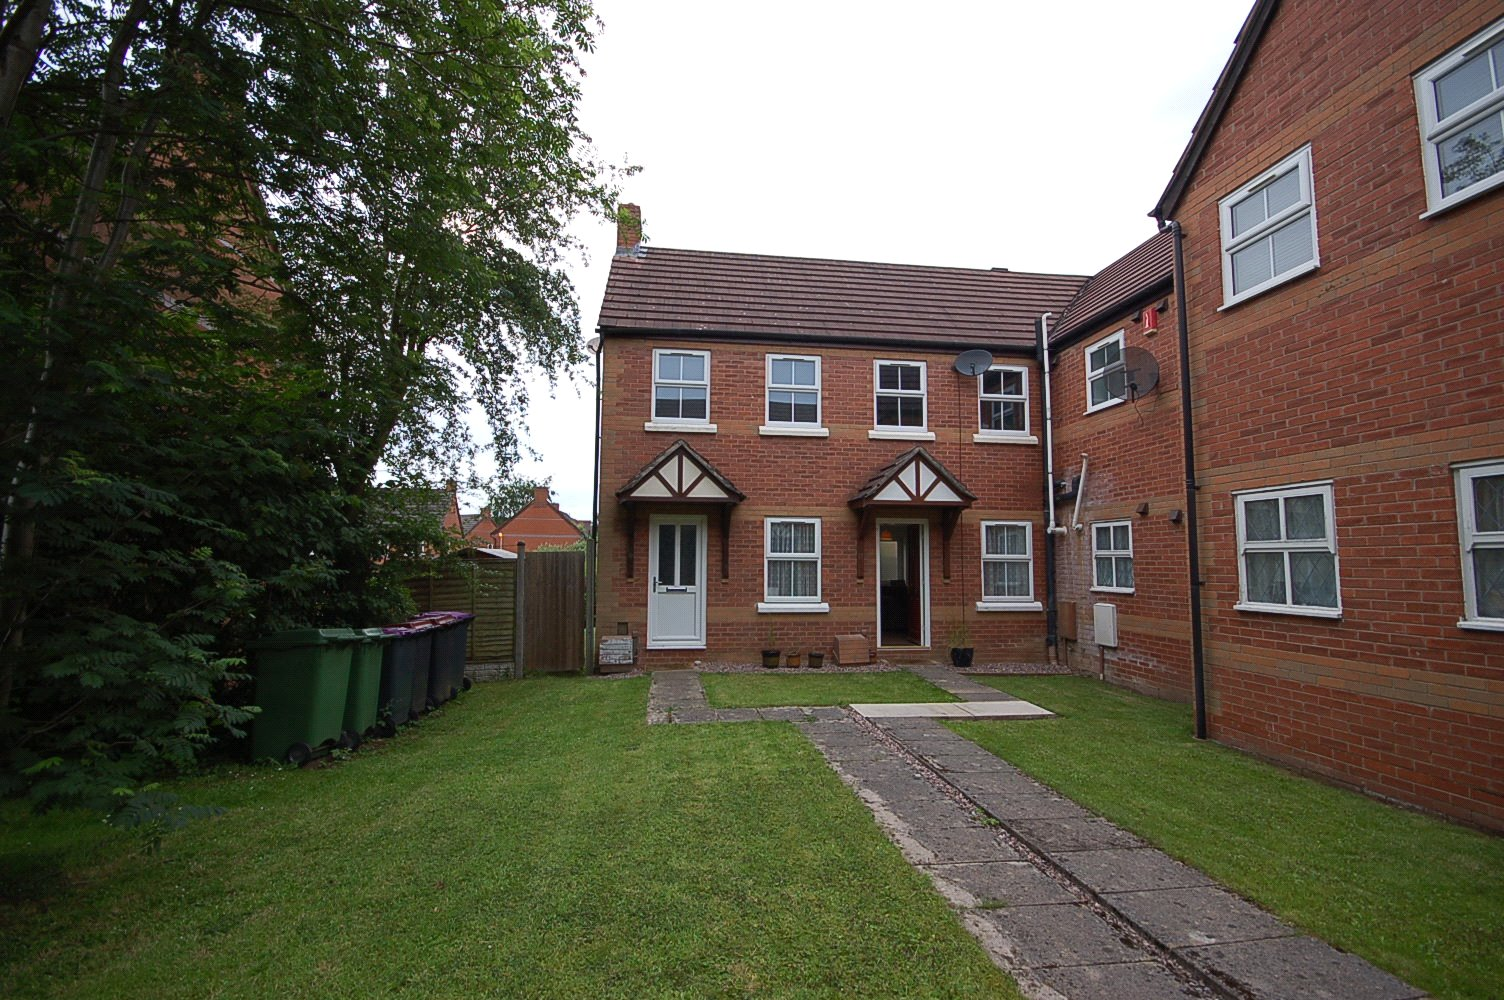 1 Bedroom House for rent in 17 Fosters Foel, Telford, TF4